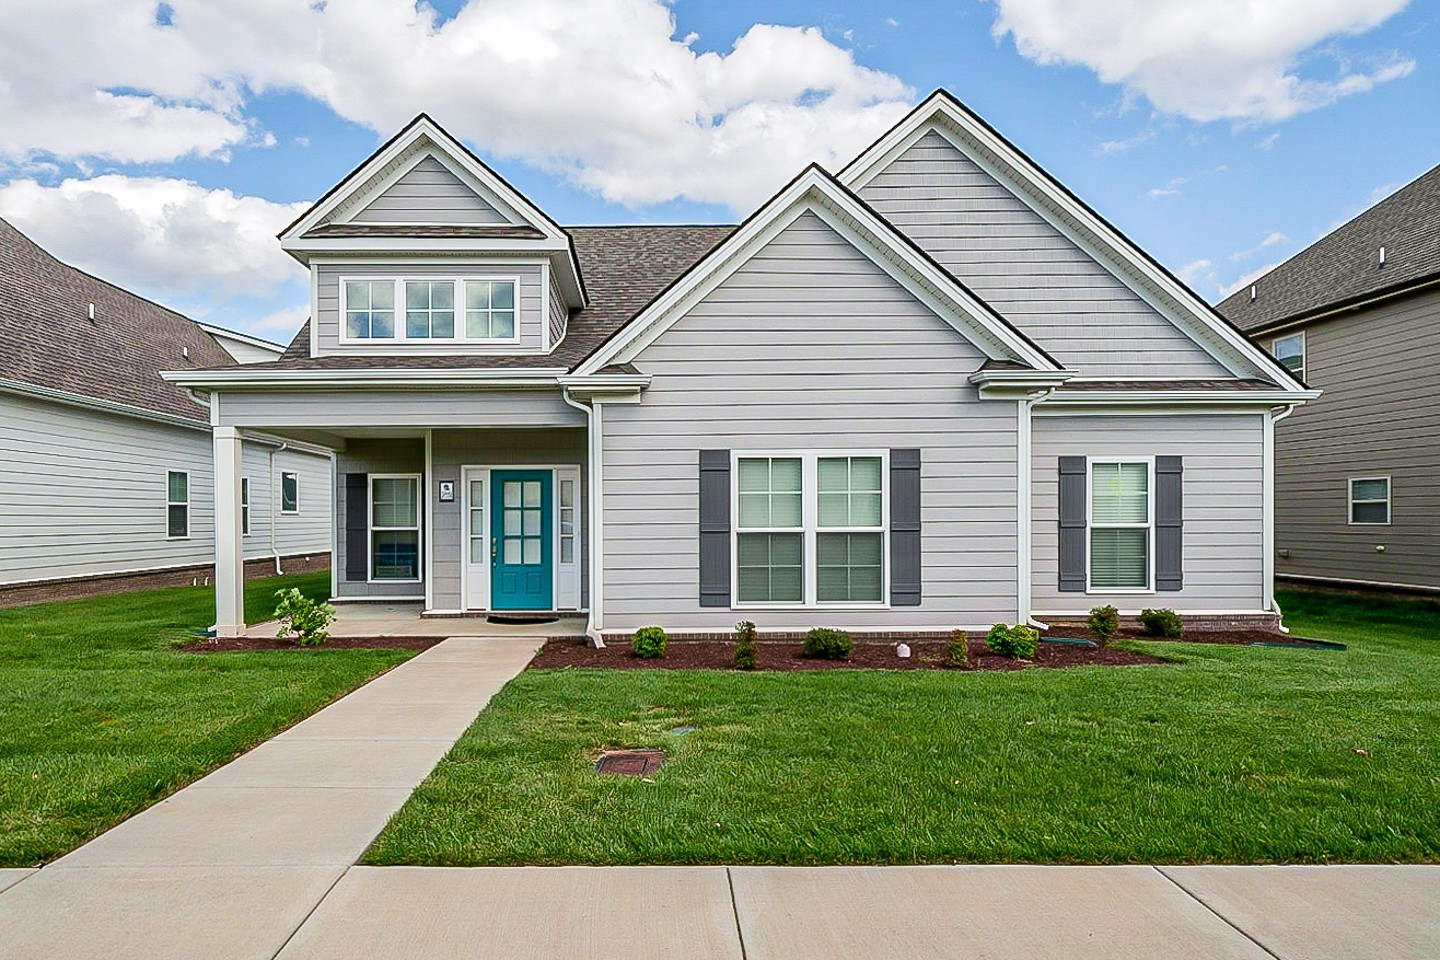 Built in 2019, this Murfreesboro two-story cul-de-sac home offers a patio, granite countertops, and a two-car garage.